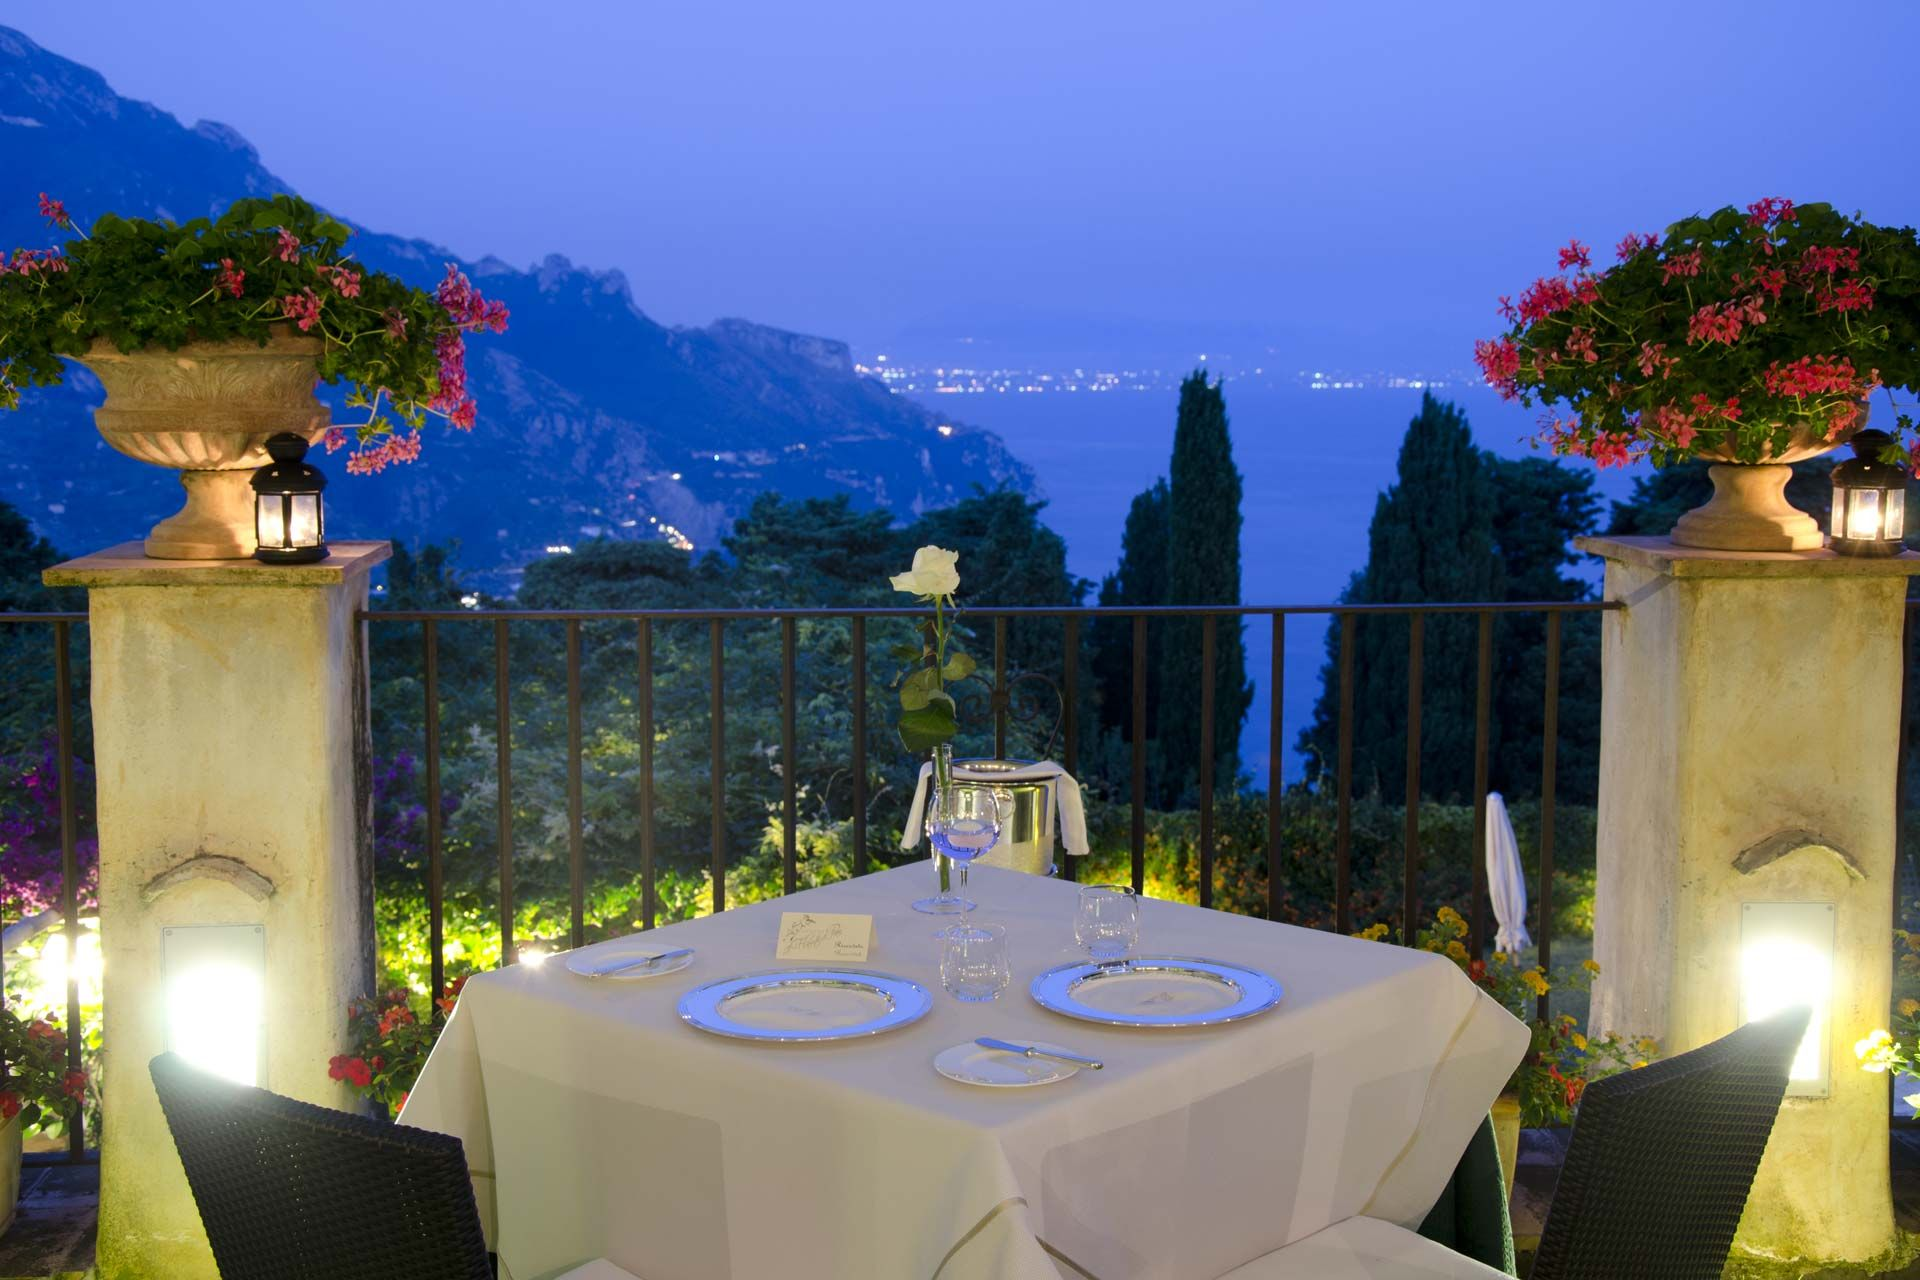 Villa Cimbrone Italy restaurant, Beautiful villas, Trip